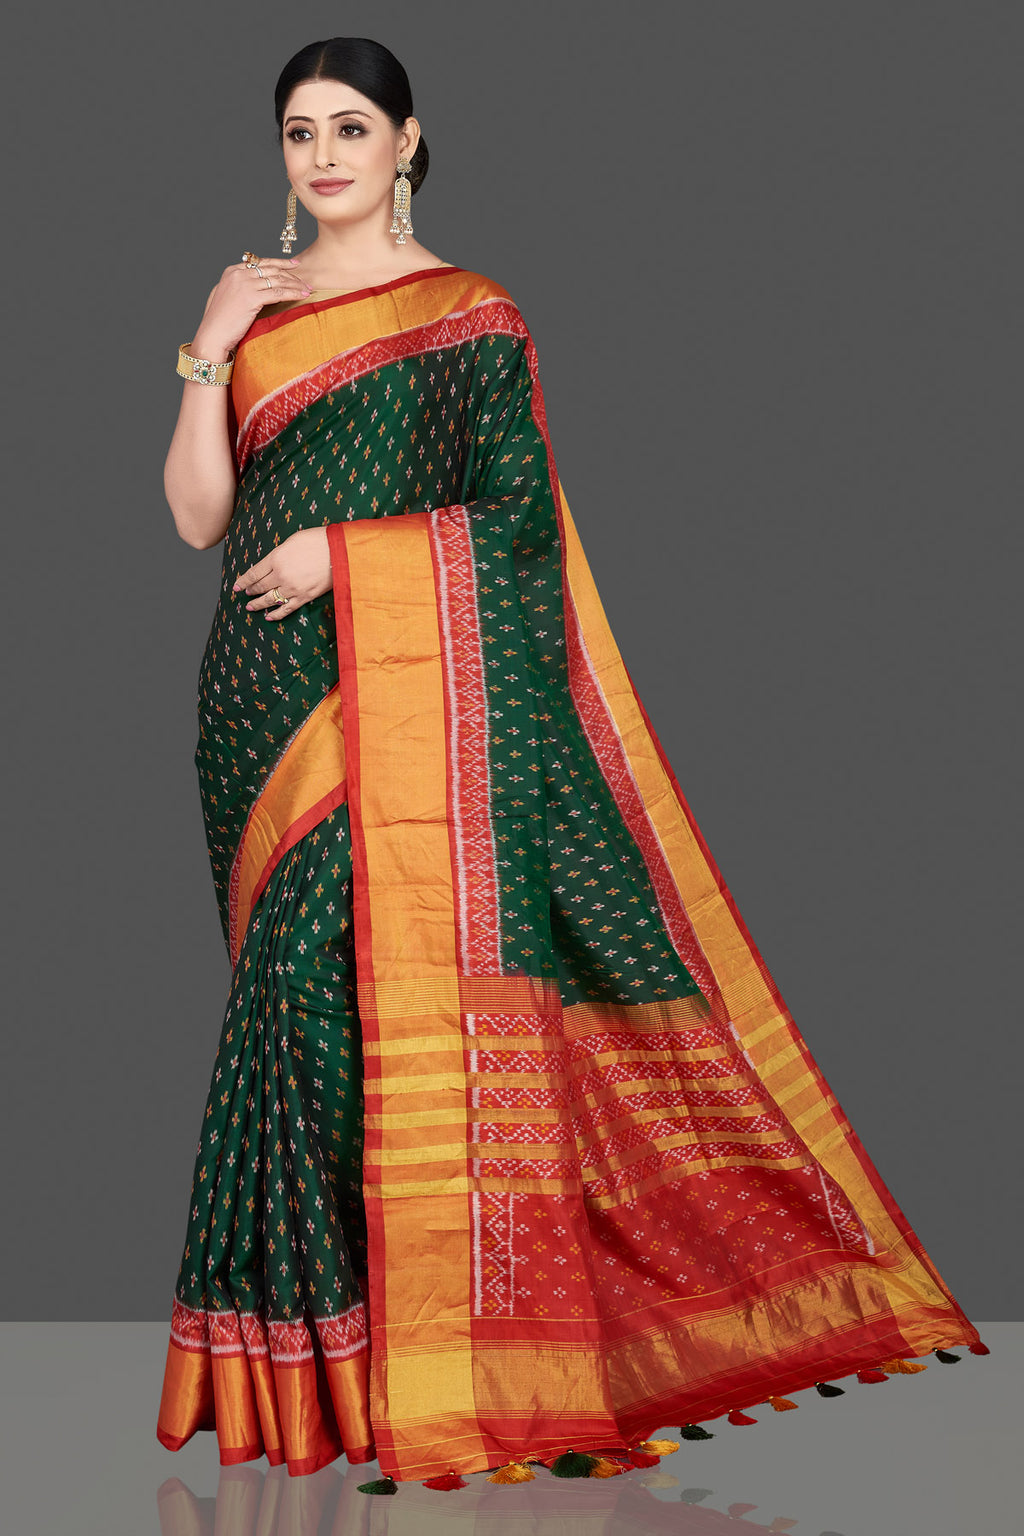 Buy gorgeous dark green patola ikkat sari online in USA with golden zari border. Be the center of attraction at weddings and special occasions in exquisite designer sarees, handwoven silk sarees, embroidered saris, pure silk sarees from Pure Elegance Indian fashion store in USA.-full view